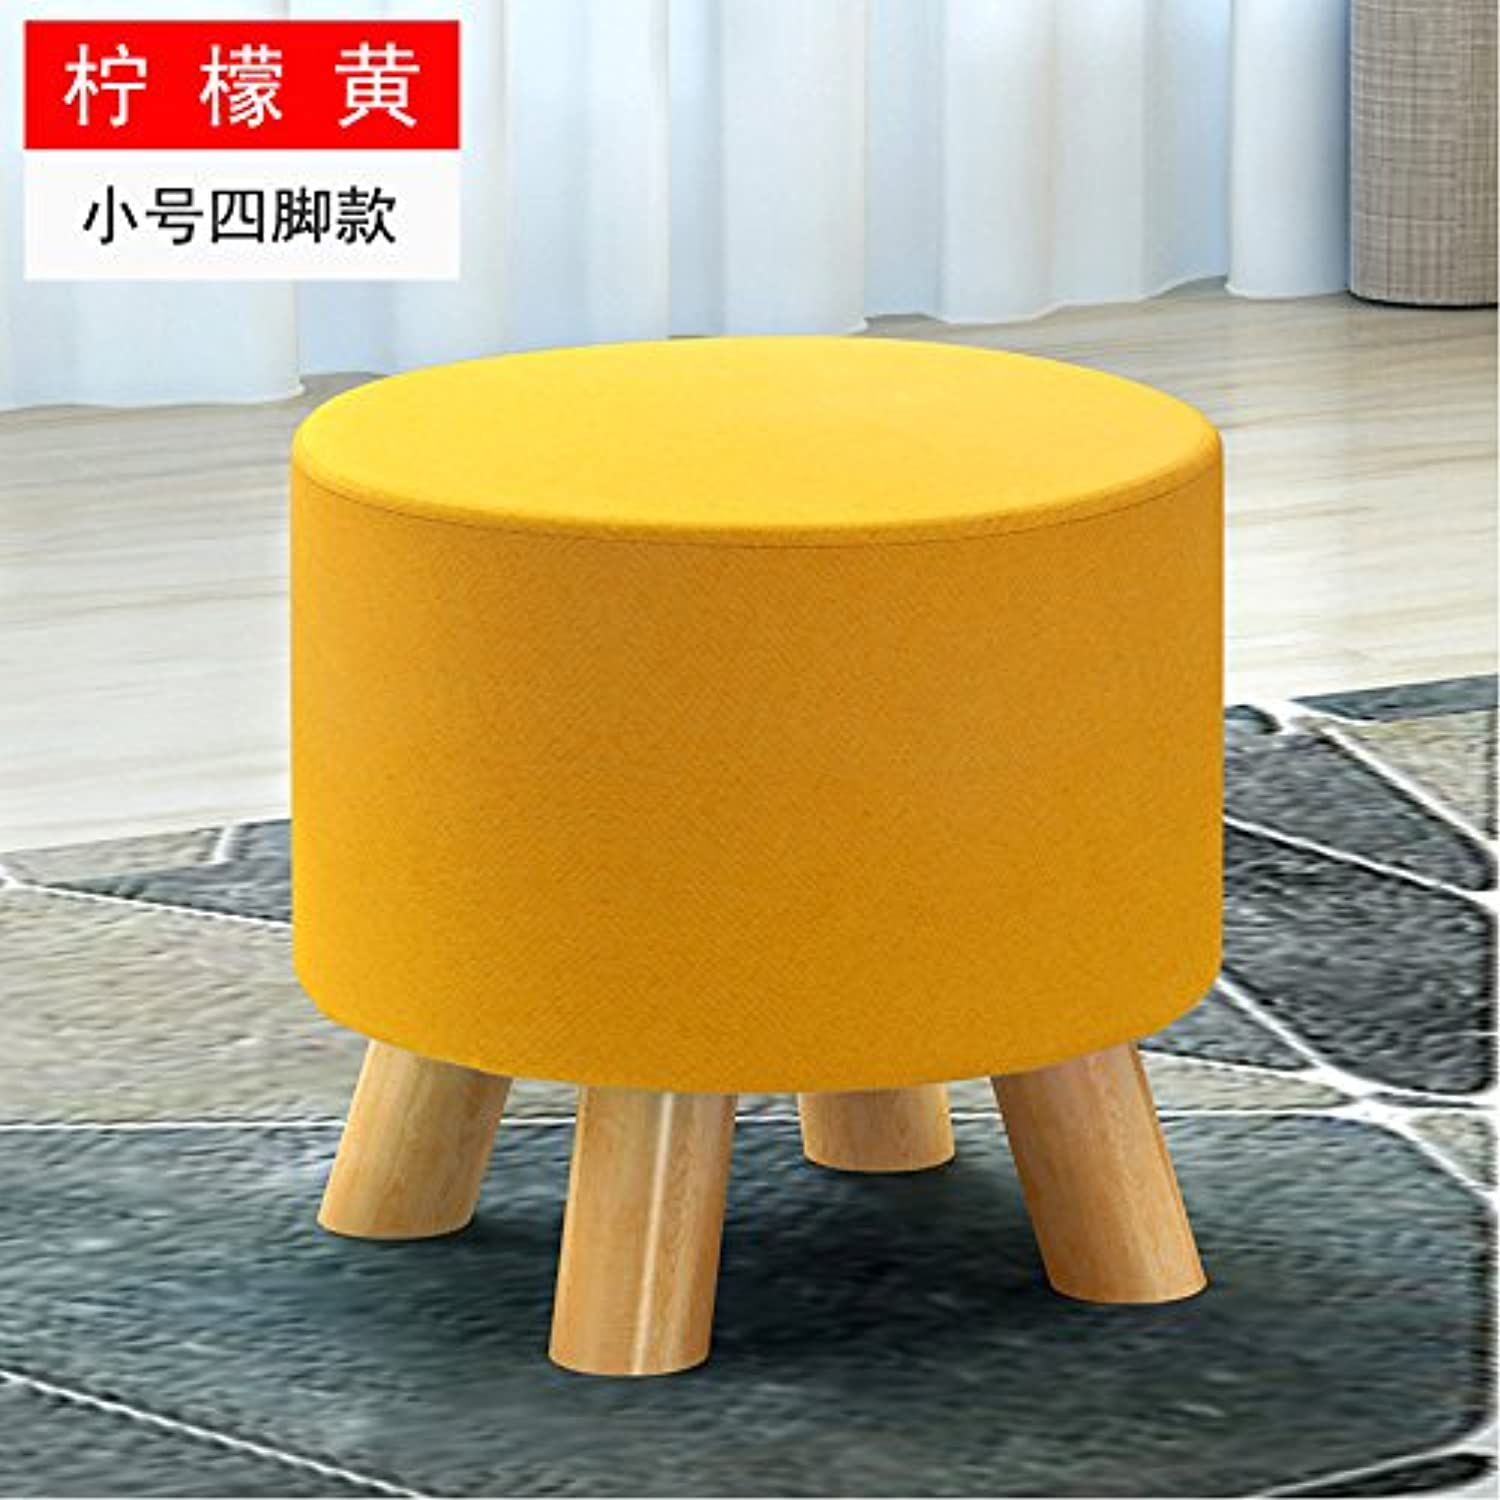 Dana Carrie The shoes is a Stylish Round stool Creative wear shoes of Cloth Sofas stools Benches stool shoes stool Solid Wood on a Low stool, Lemon Yellow,29  27CM